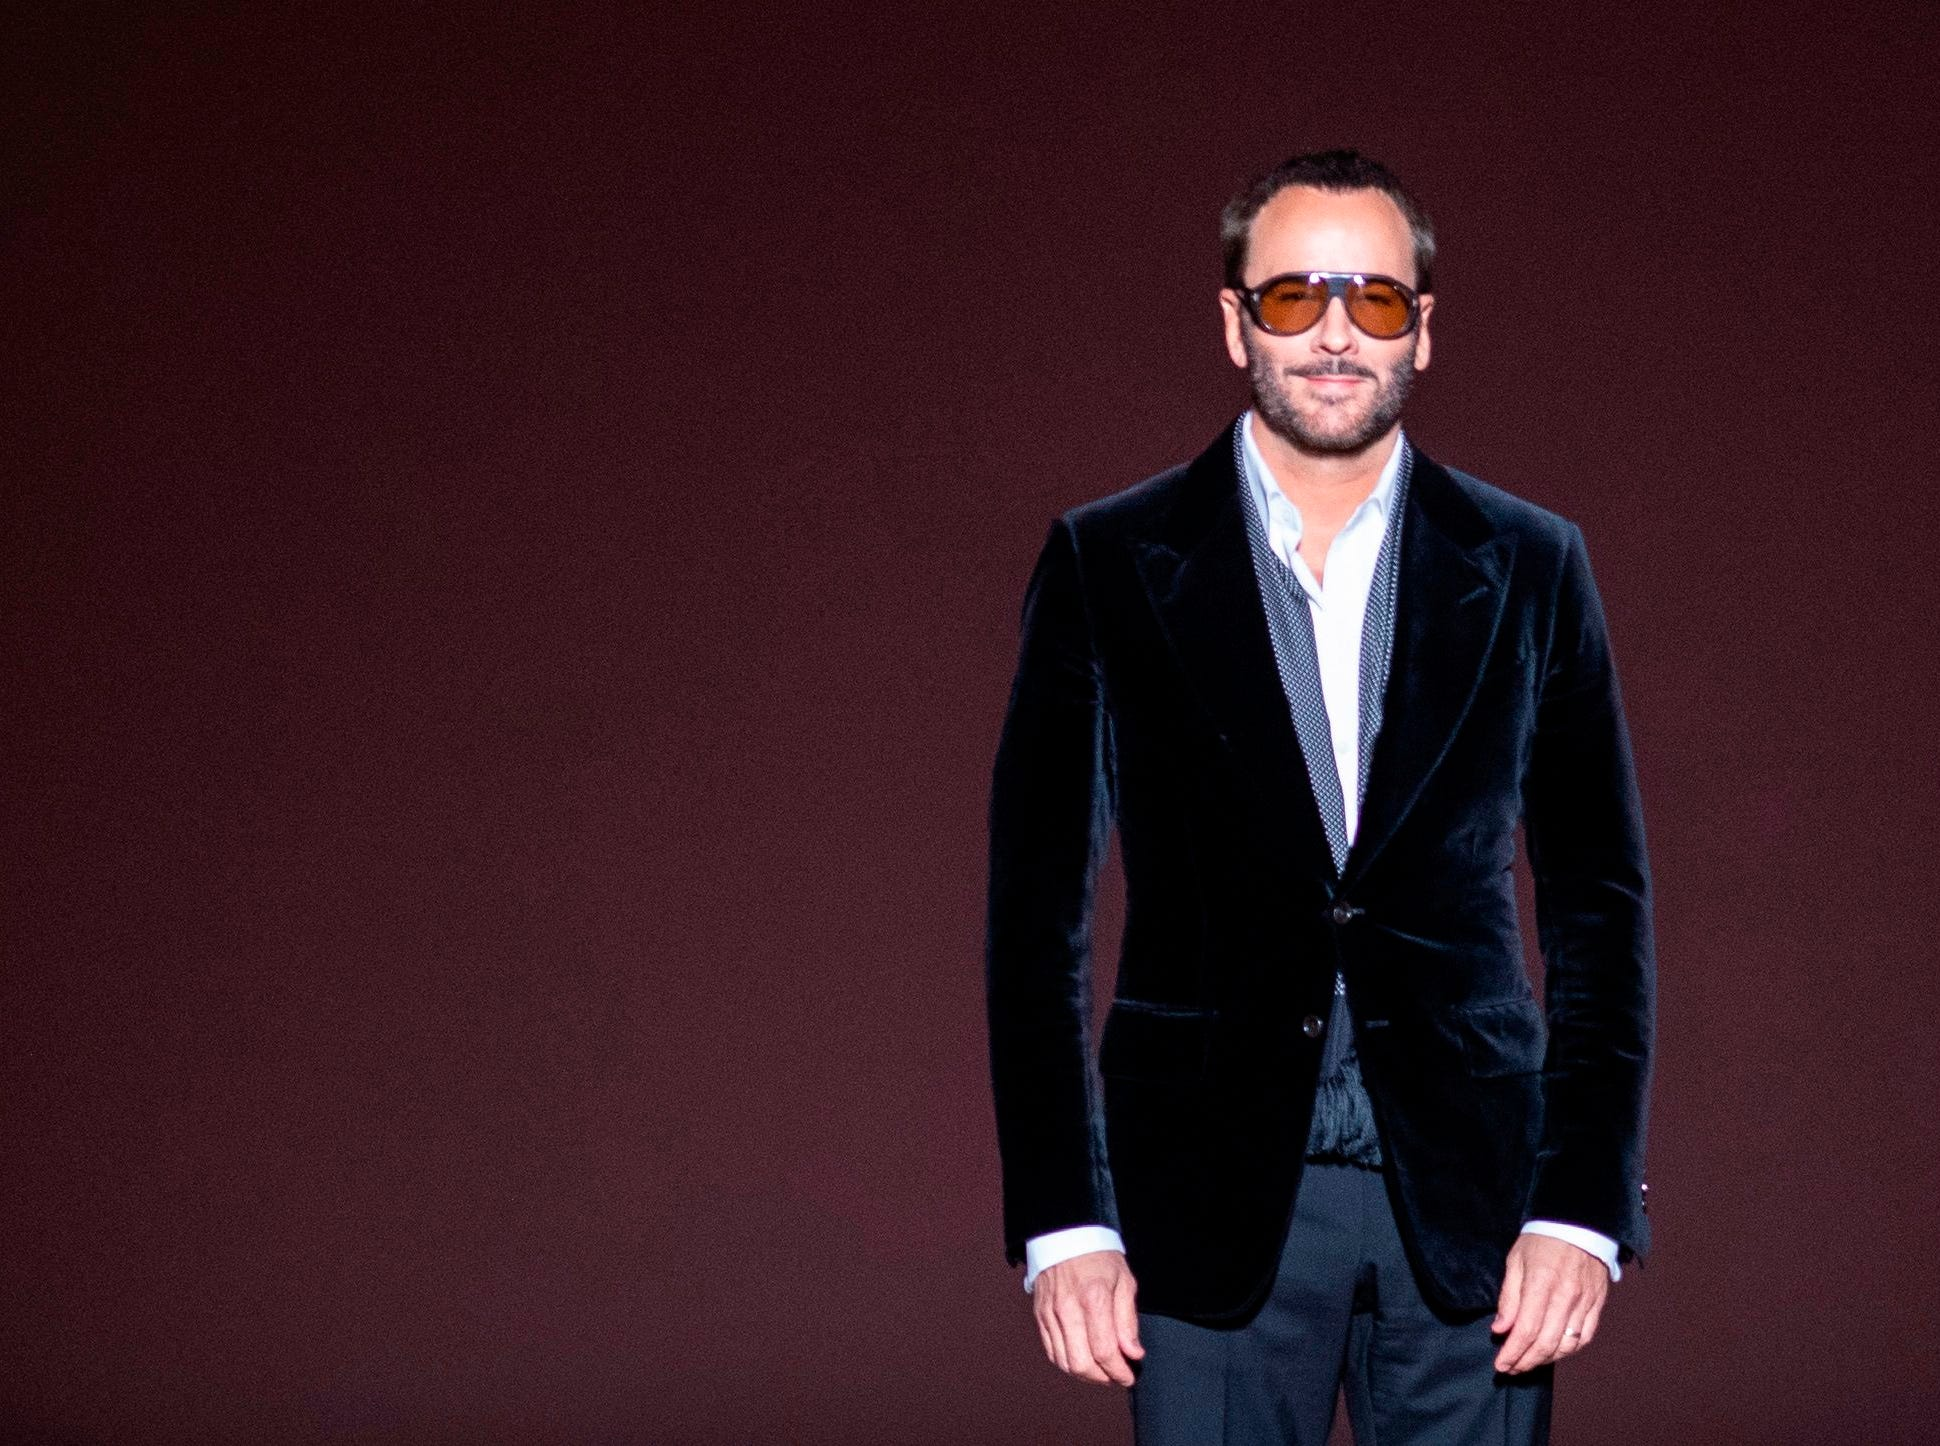 Designer Tom Ford appears on the runway after his fashion show at New York Fashion Week on February 6, 2019 in midtown Manhattan, New York City.